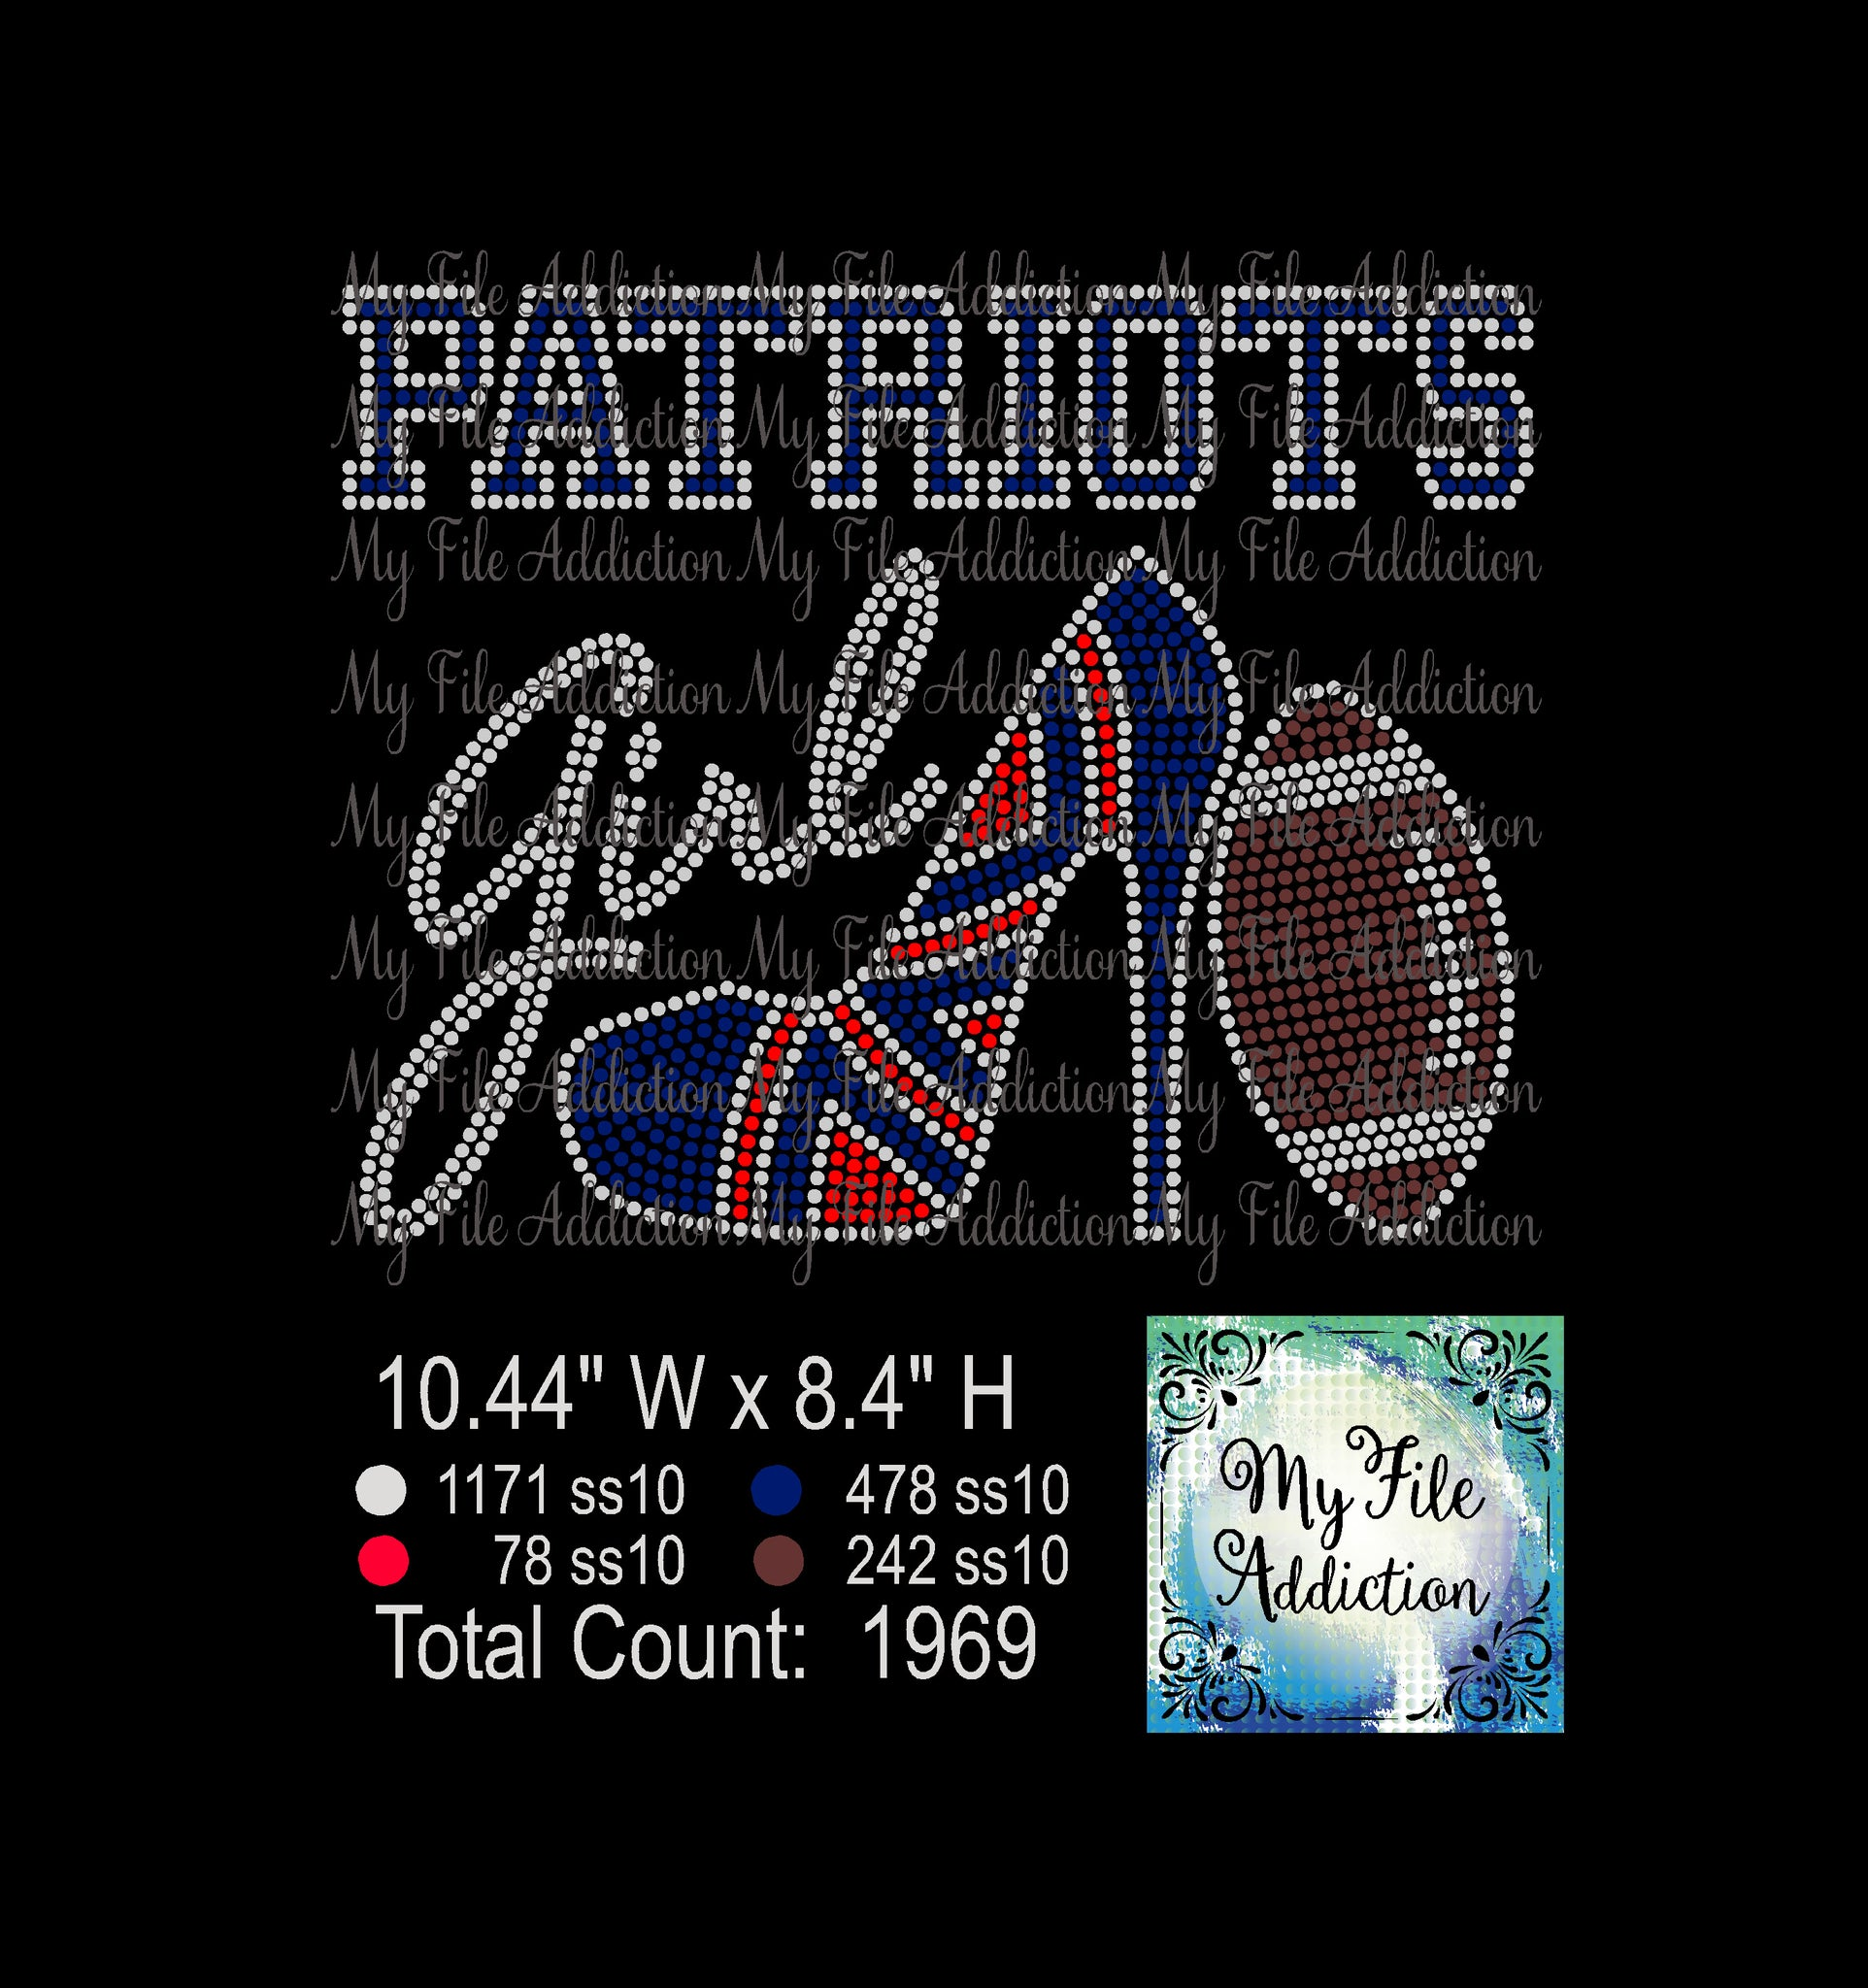 Patriots High Heel With Football Rhinestone Digital Download File - My File Addiction